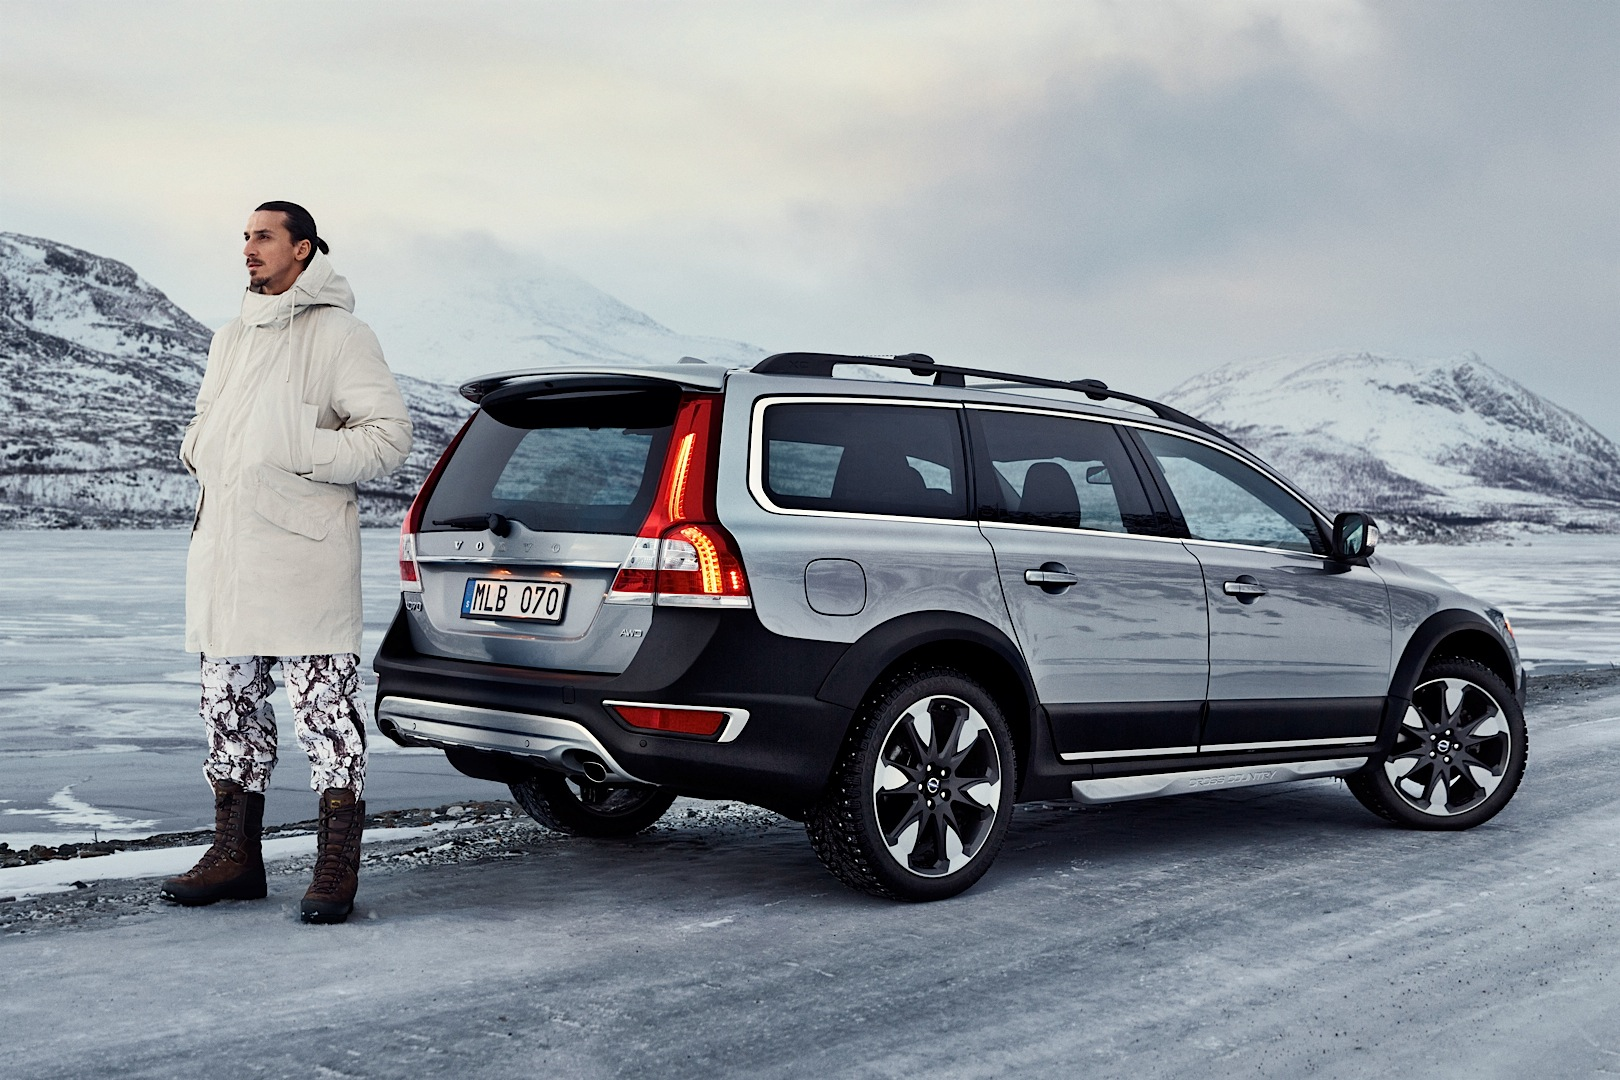 nieuwe volvo xc70 2014 2017 2018 best cars reviews 2017 2018 best cars reviews. Black Bedroom Furniture Sets. Home Design Ideas